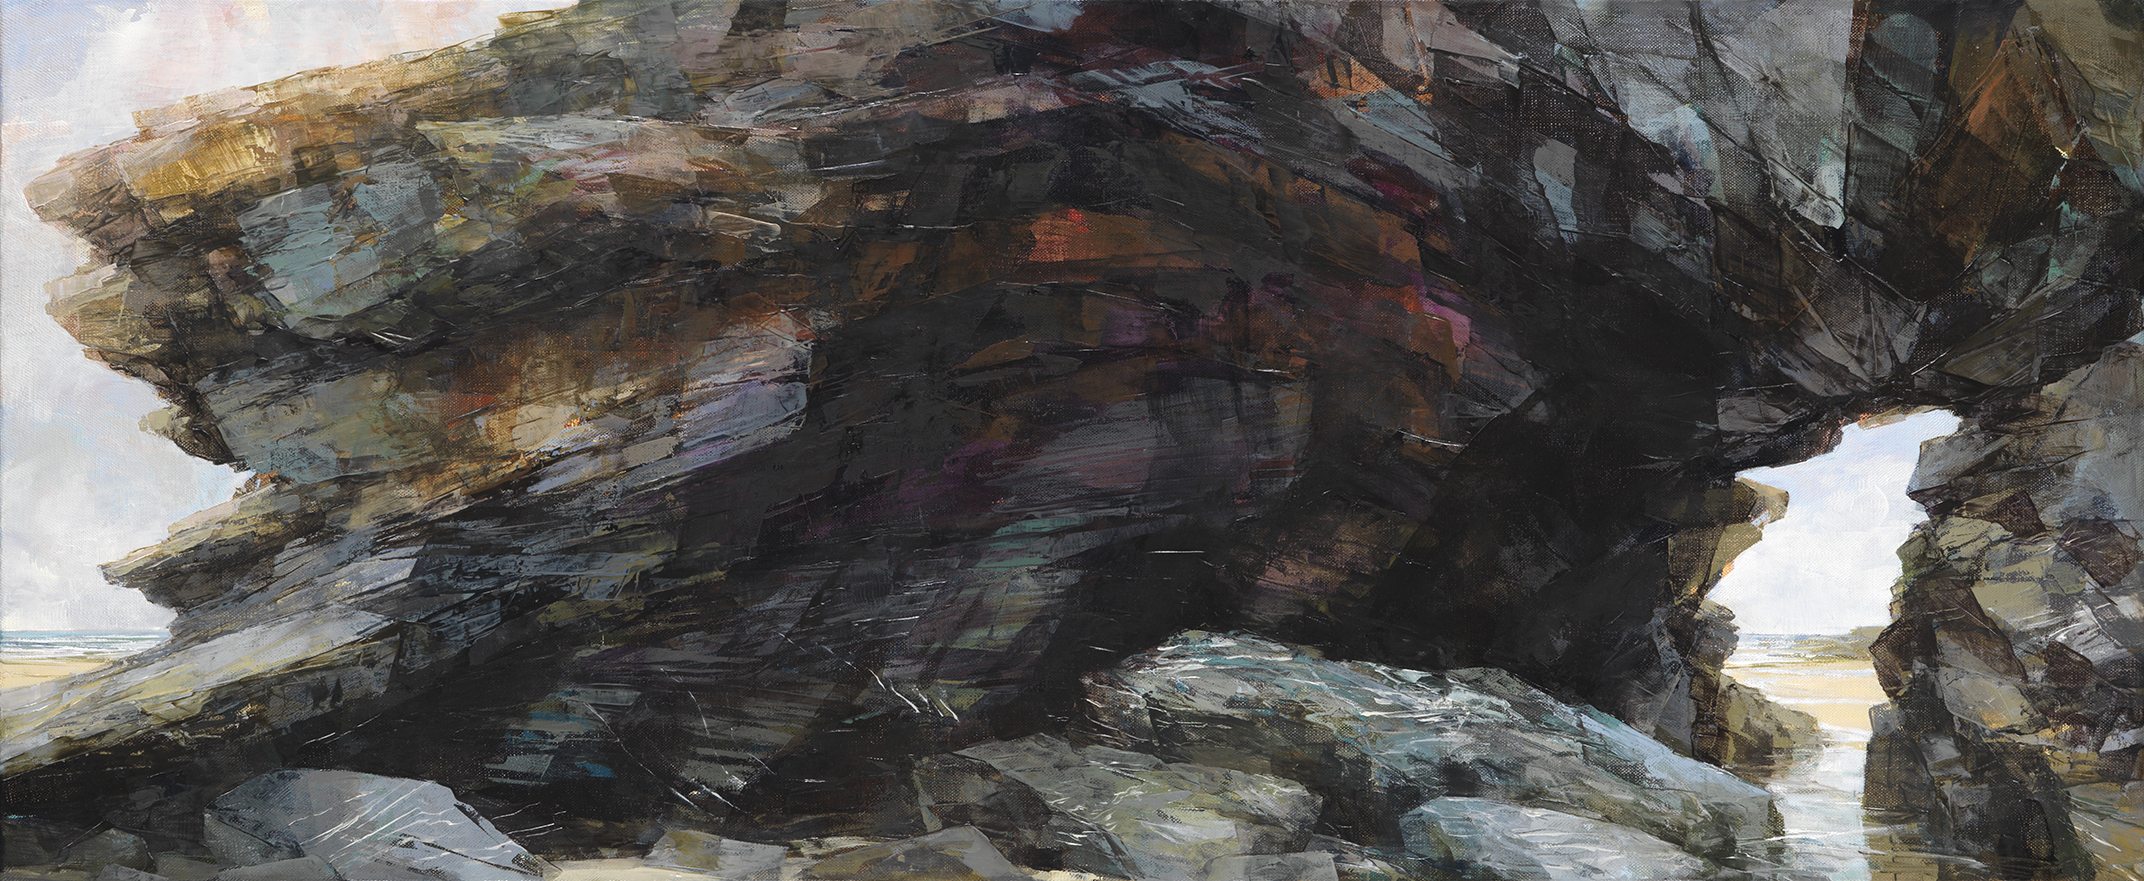 Sarah Adams, 'Betrothal Arch', oil on linen, 50 x 120 cm